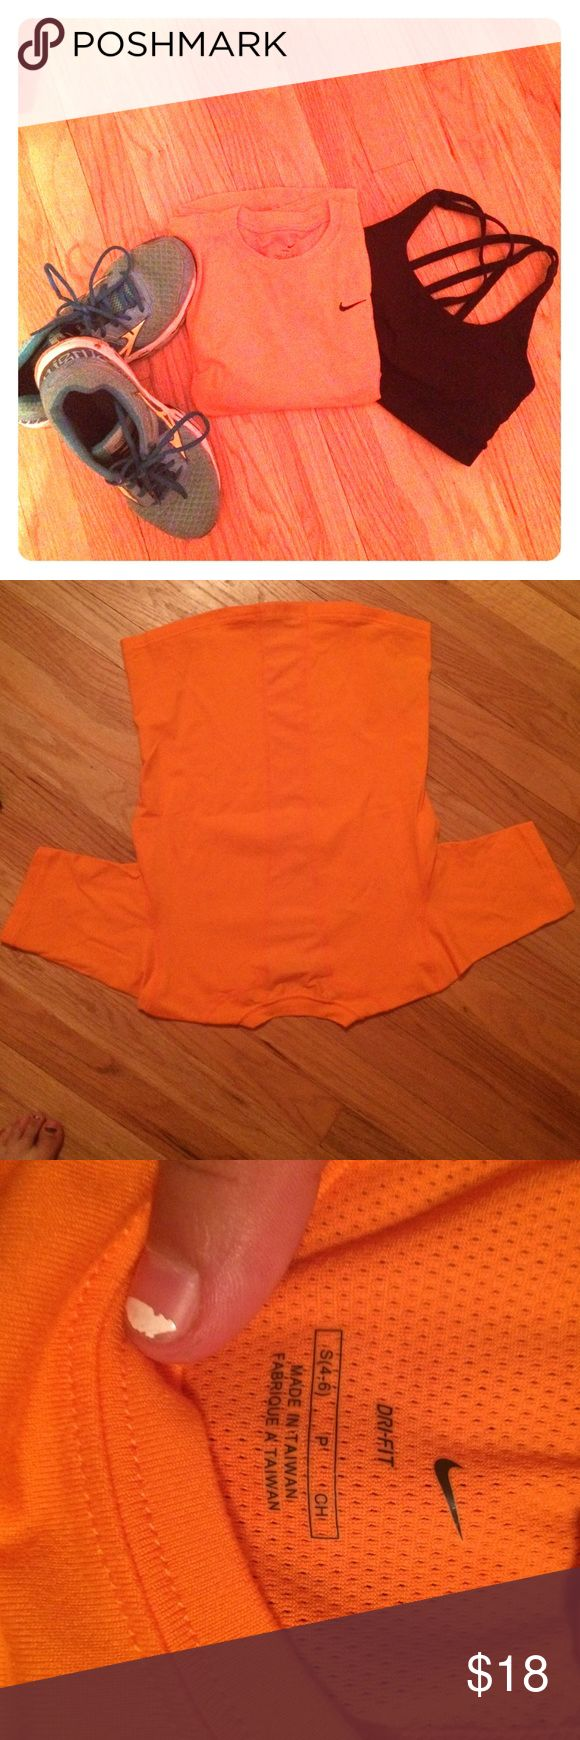 Dri-Fit orange tee I love this Nike top! it is super soft with a mesh racerback cutout as shown in second picture. This is in great condition! Any questions? Just ask!                                                                               👍🏽trades👍🏽Ⓜ️👎🅿️🅿️ Nike Tops Tees - Short Sleeve